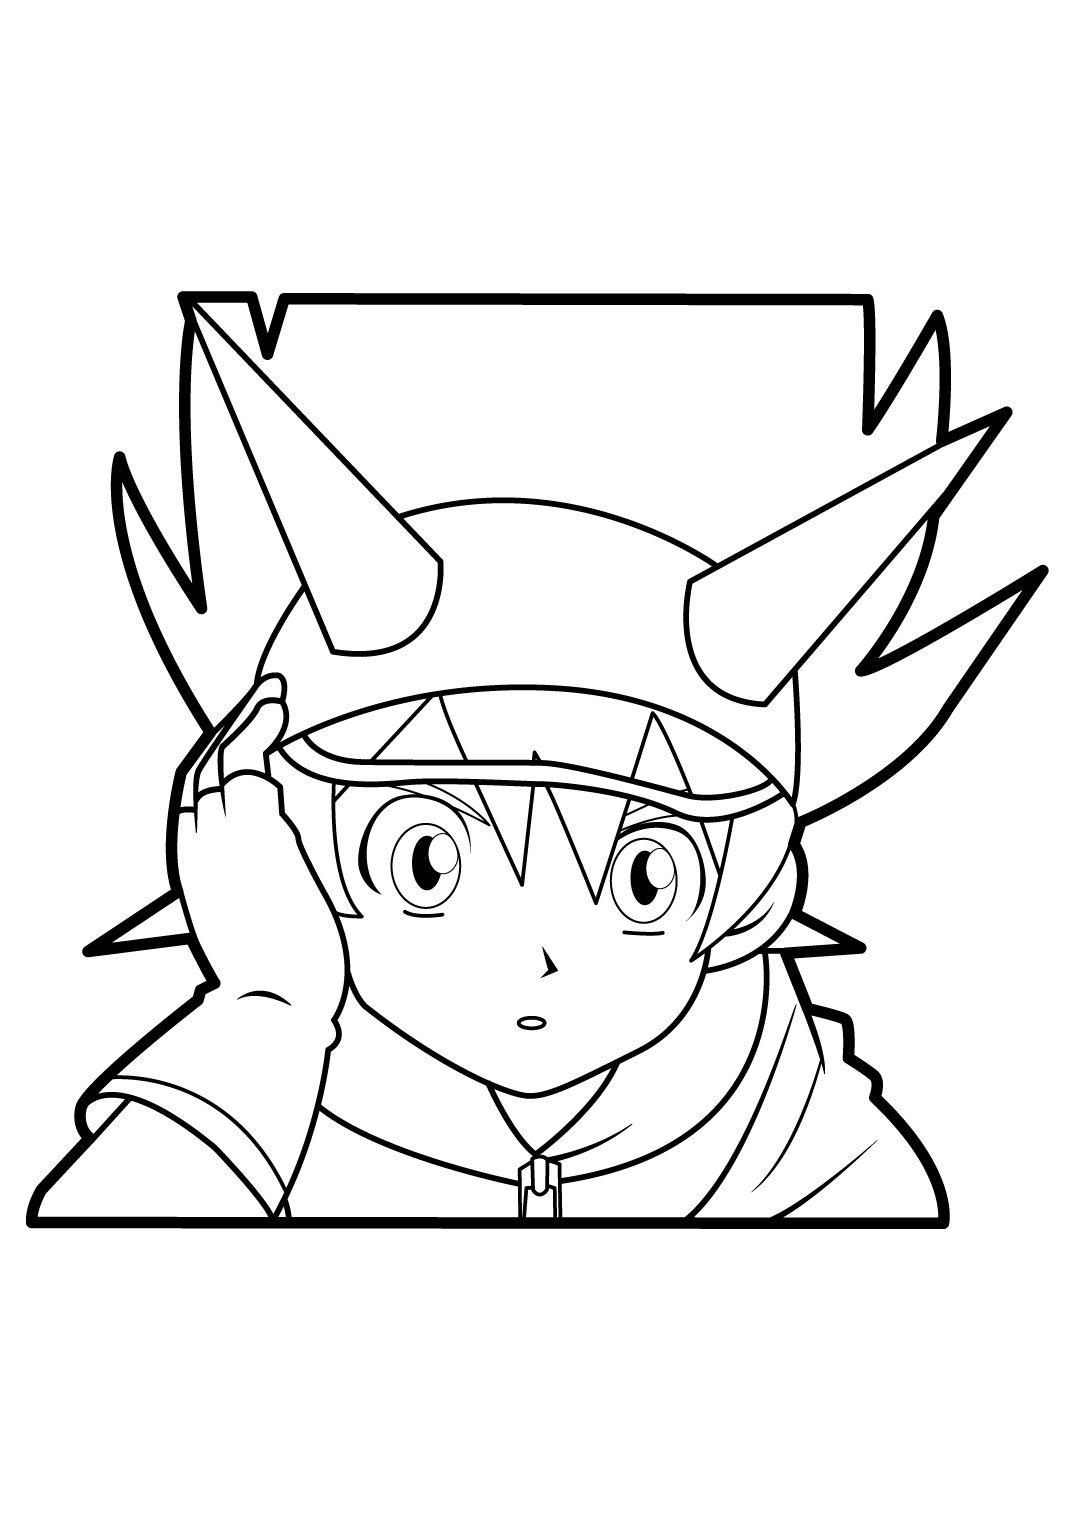 Beyblade coloring pages related pictures pages dinosaur for Body outline coloring page